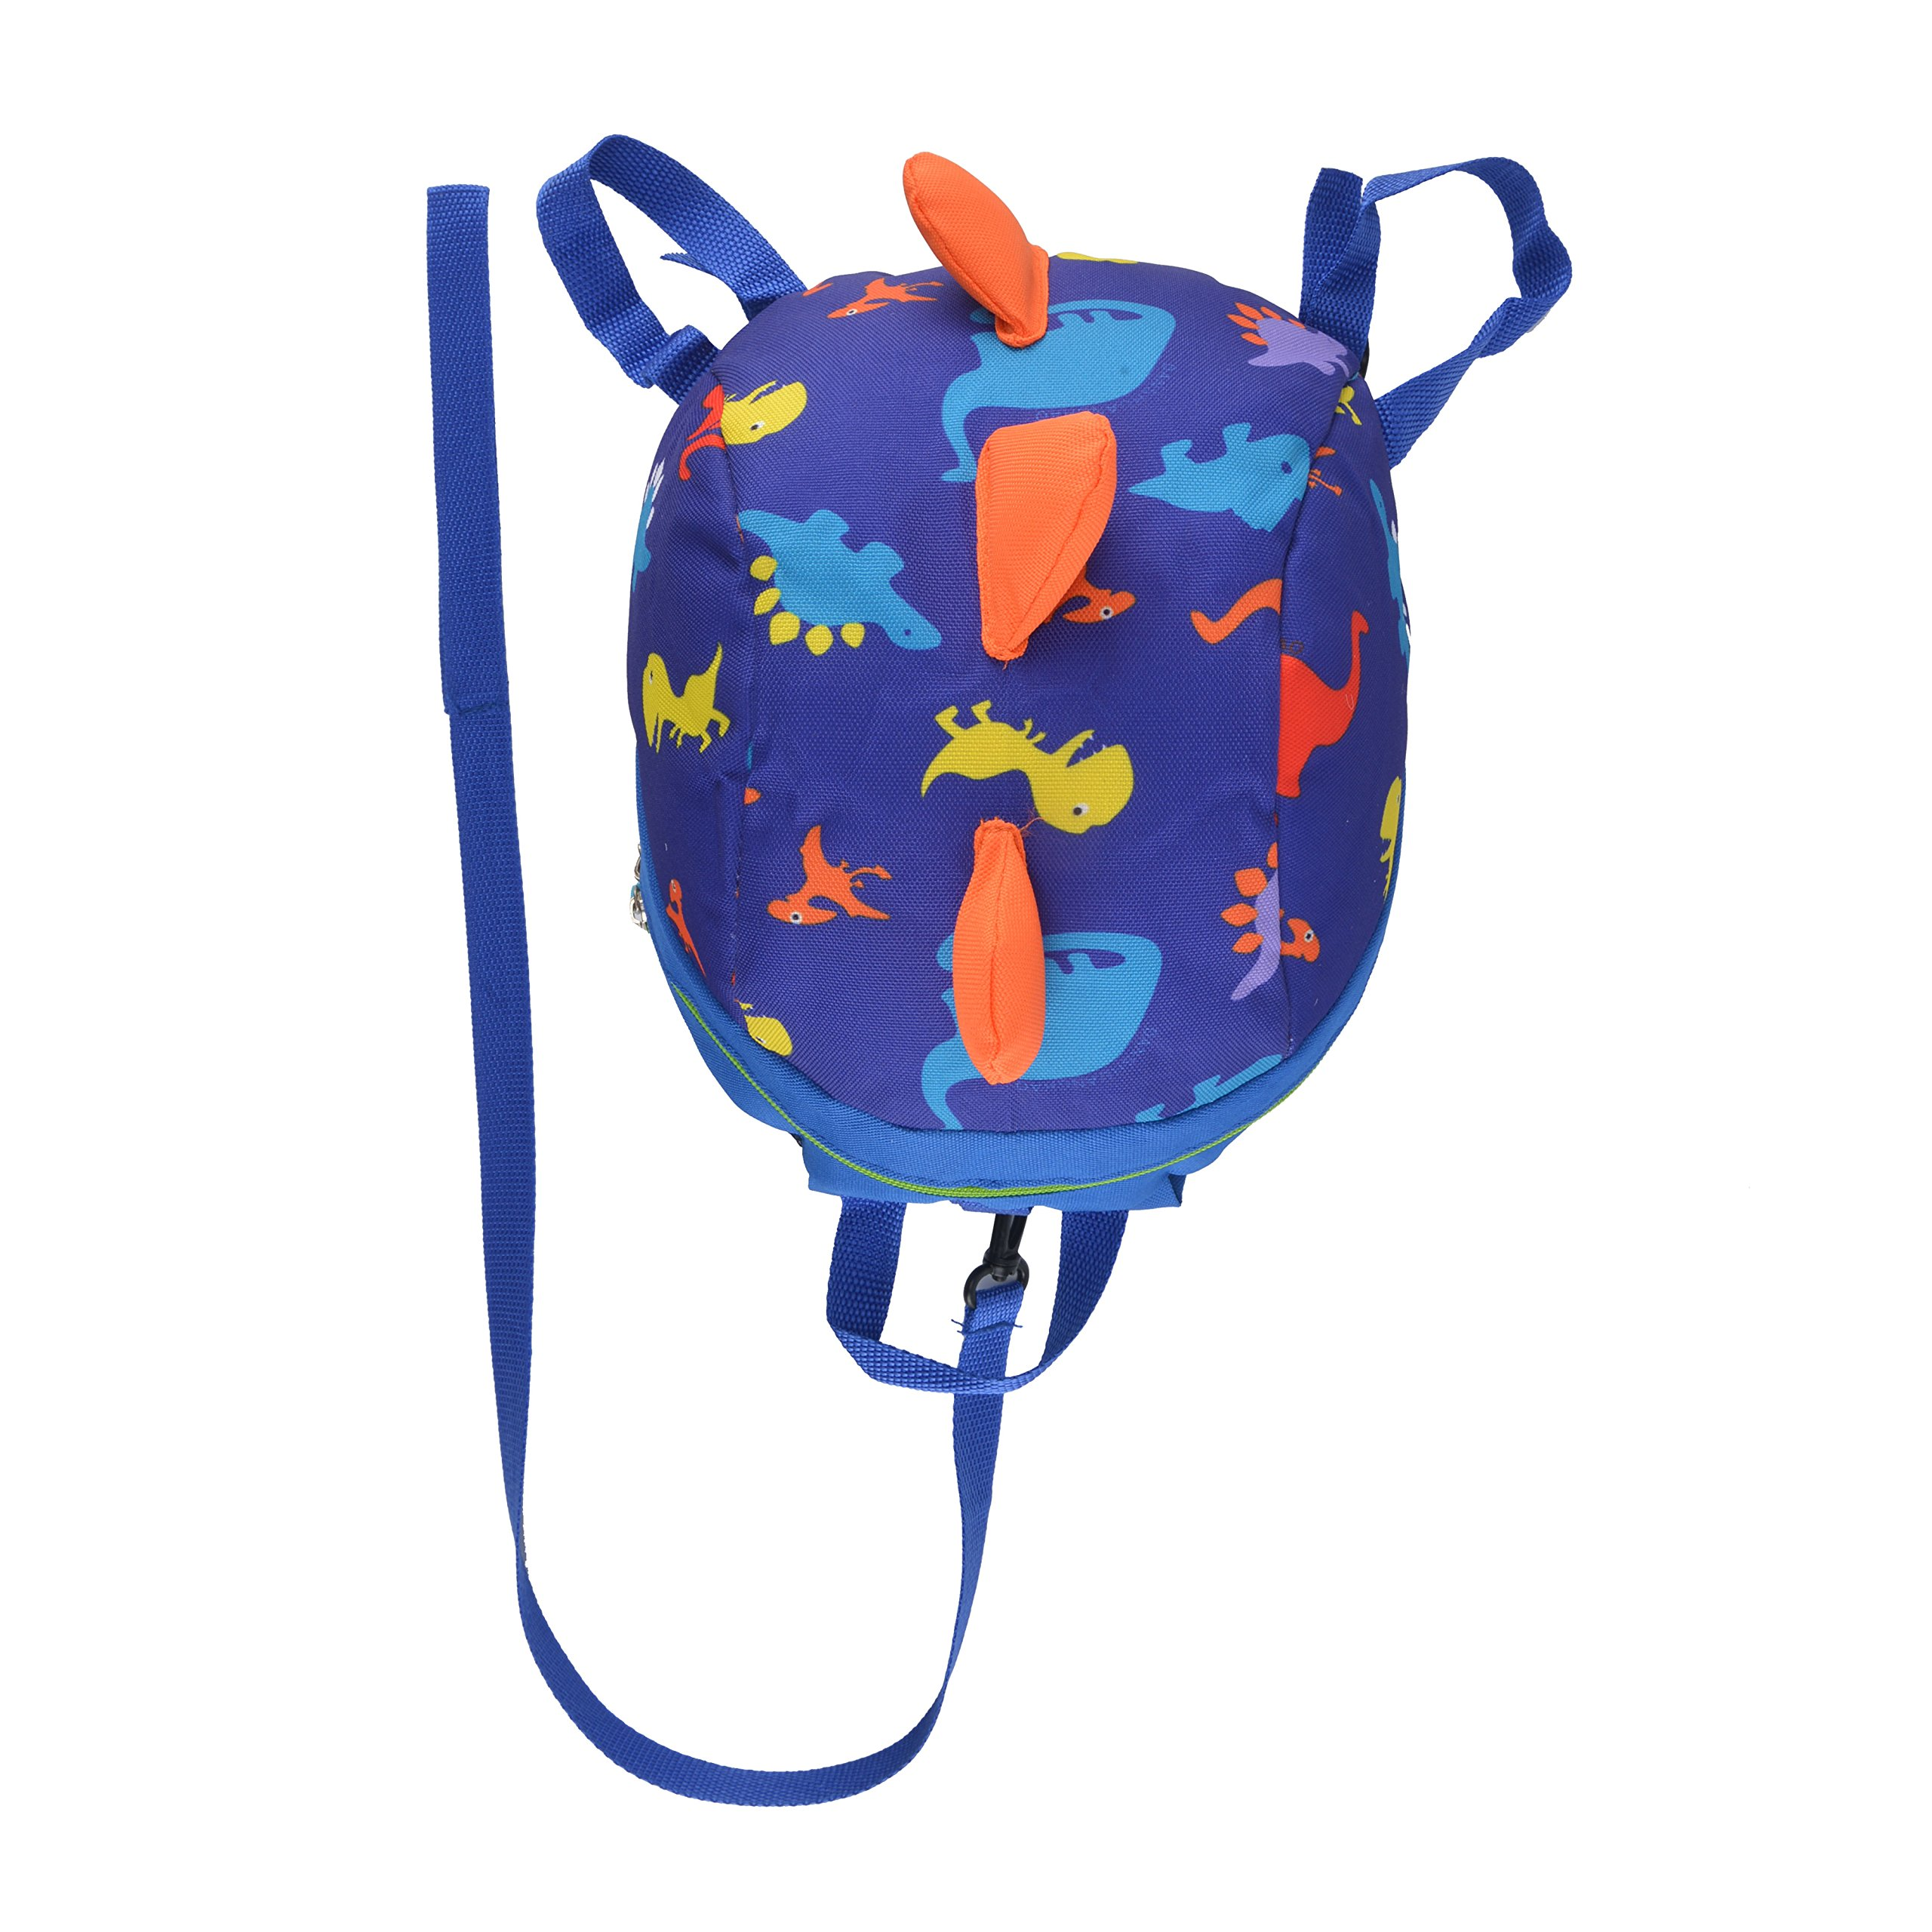 Baby Toddler Backpack Kids Safety Harness Strap Bag with Reins-Cartoon Dinosaur